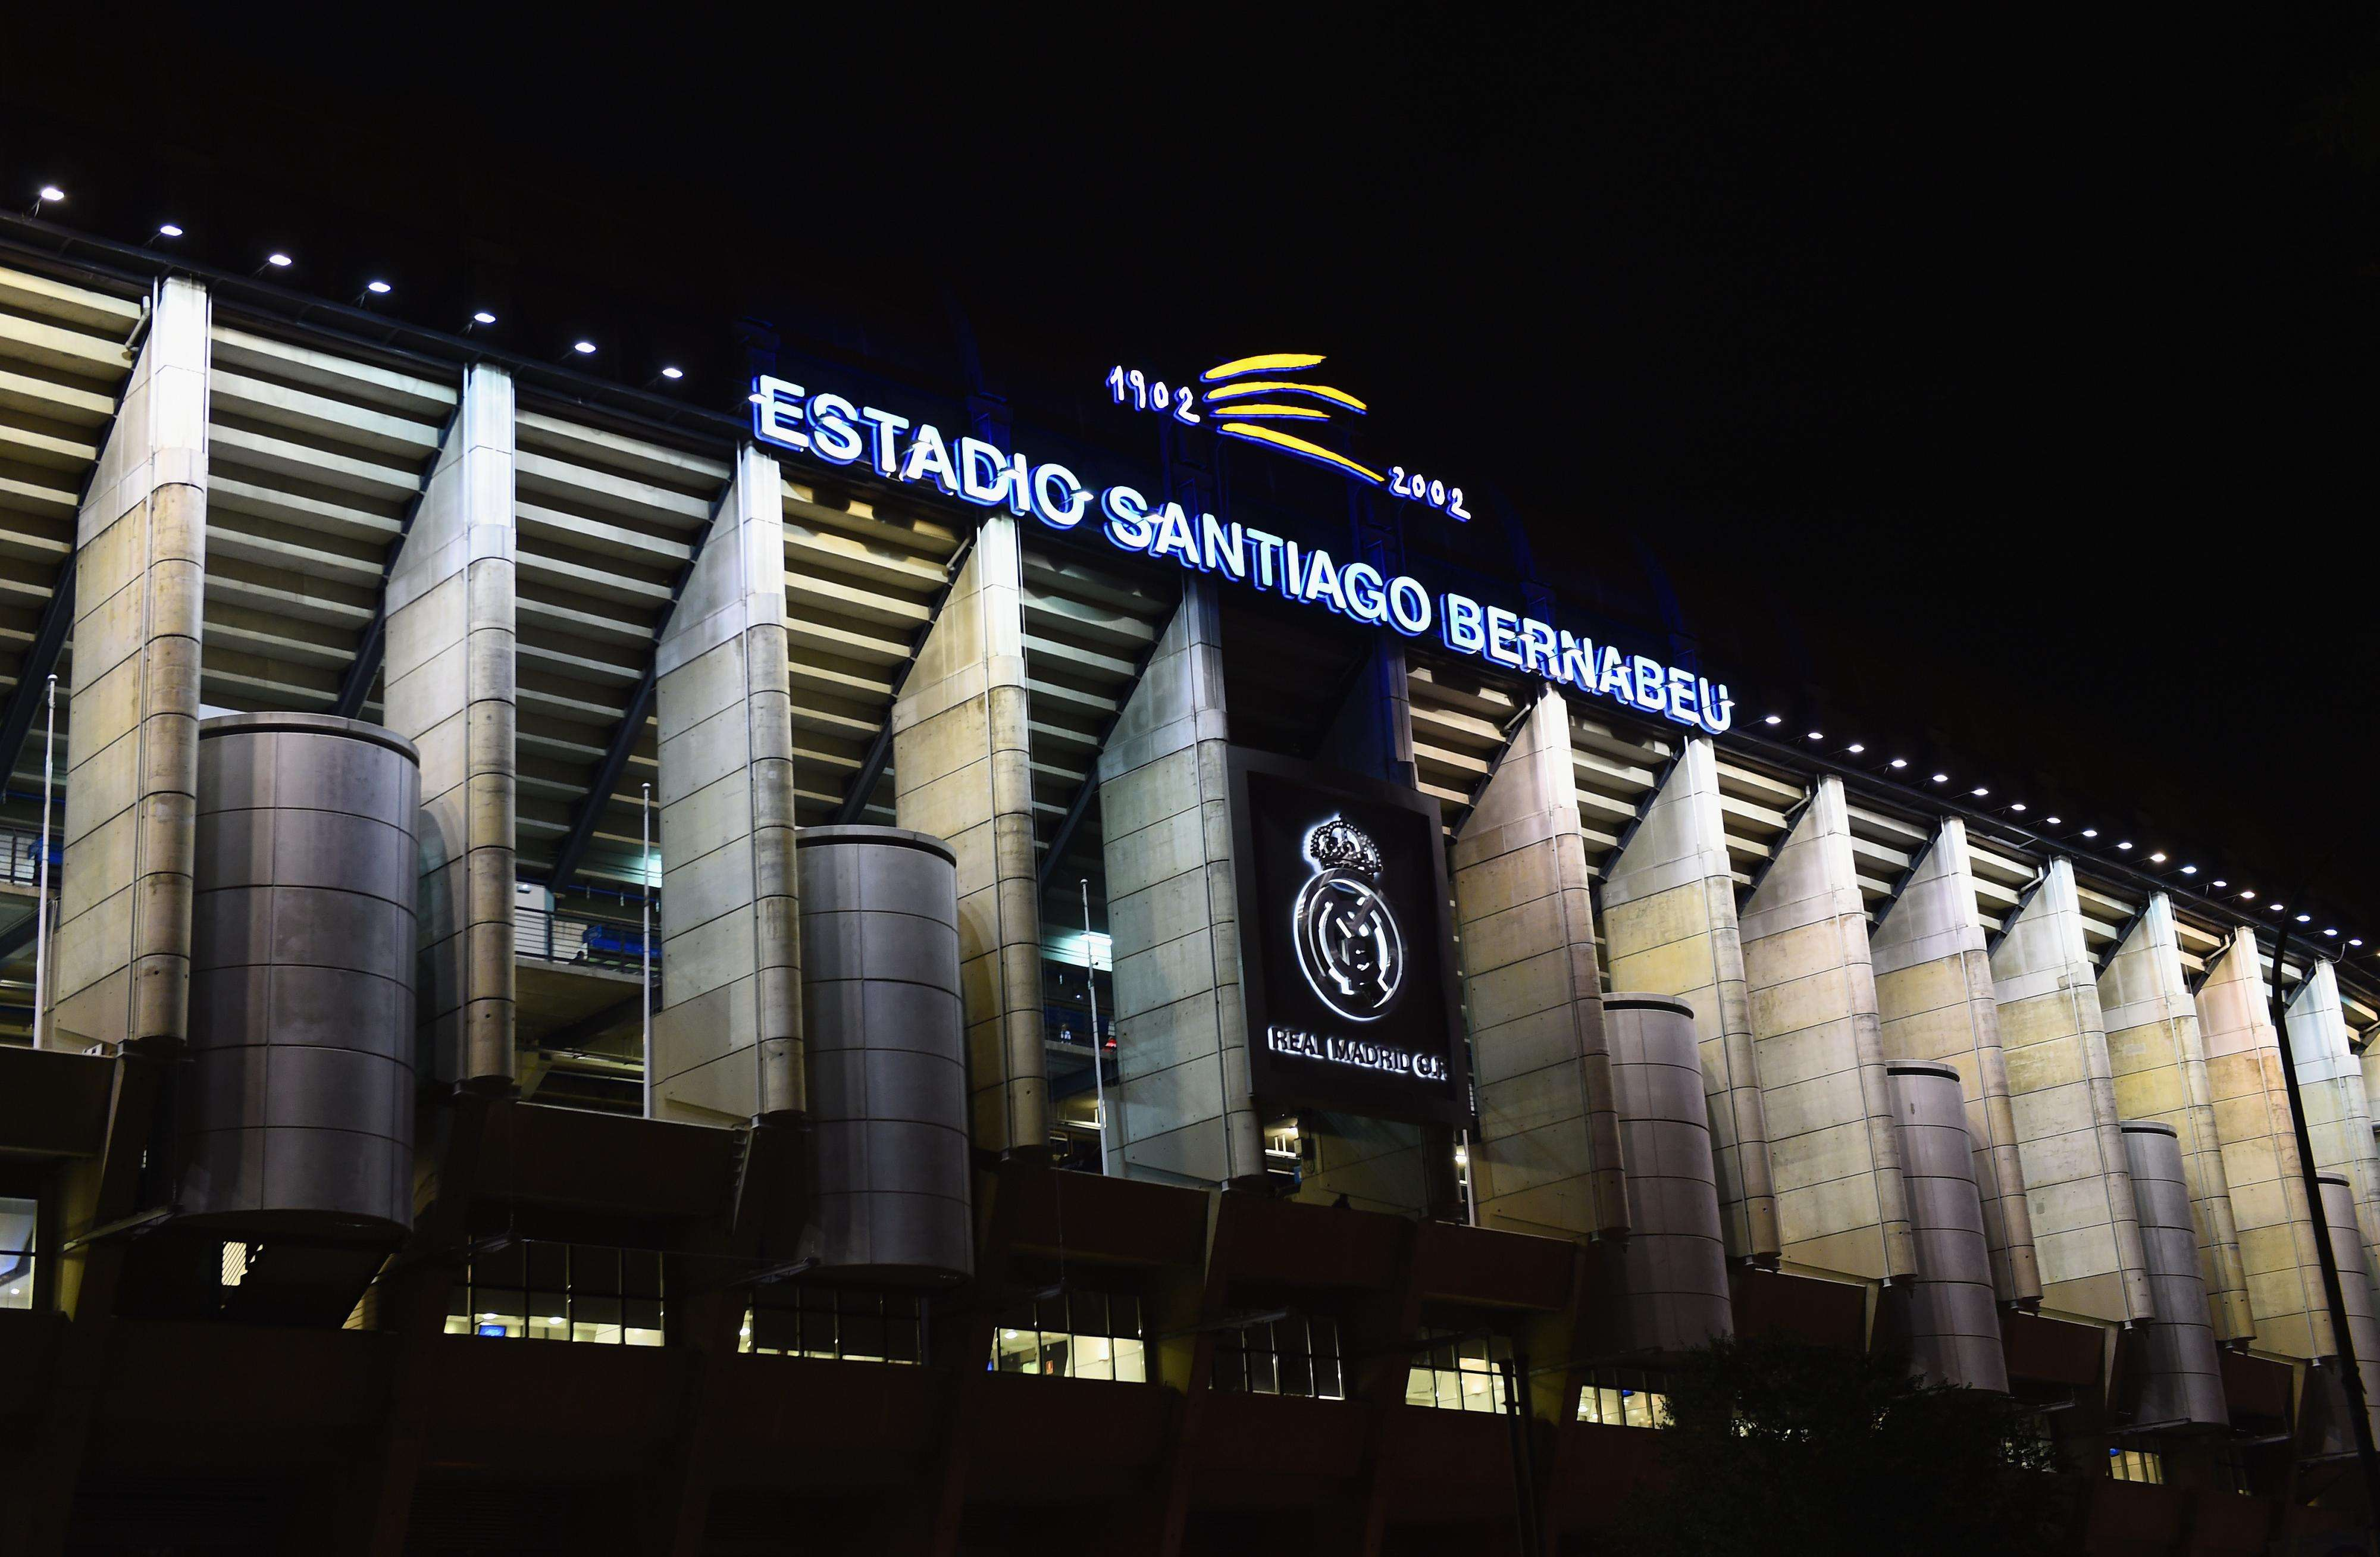 El legendario estadio Santiago Bernabéu cambiará de nombre. Foto: Getty Images